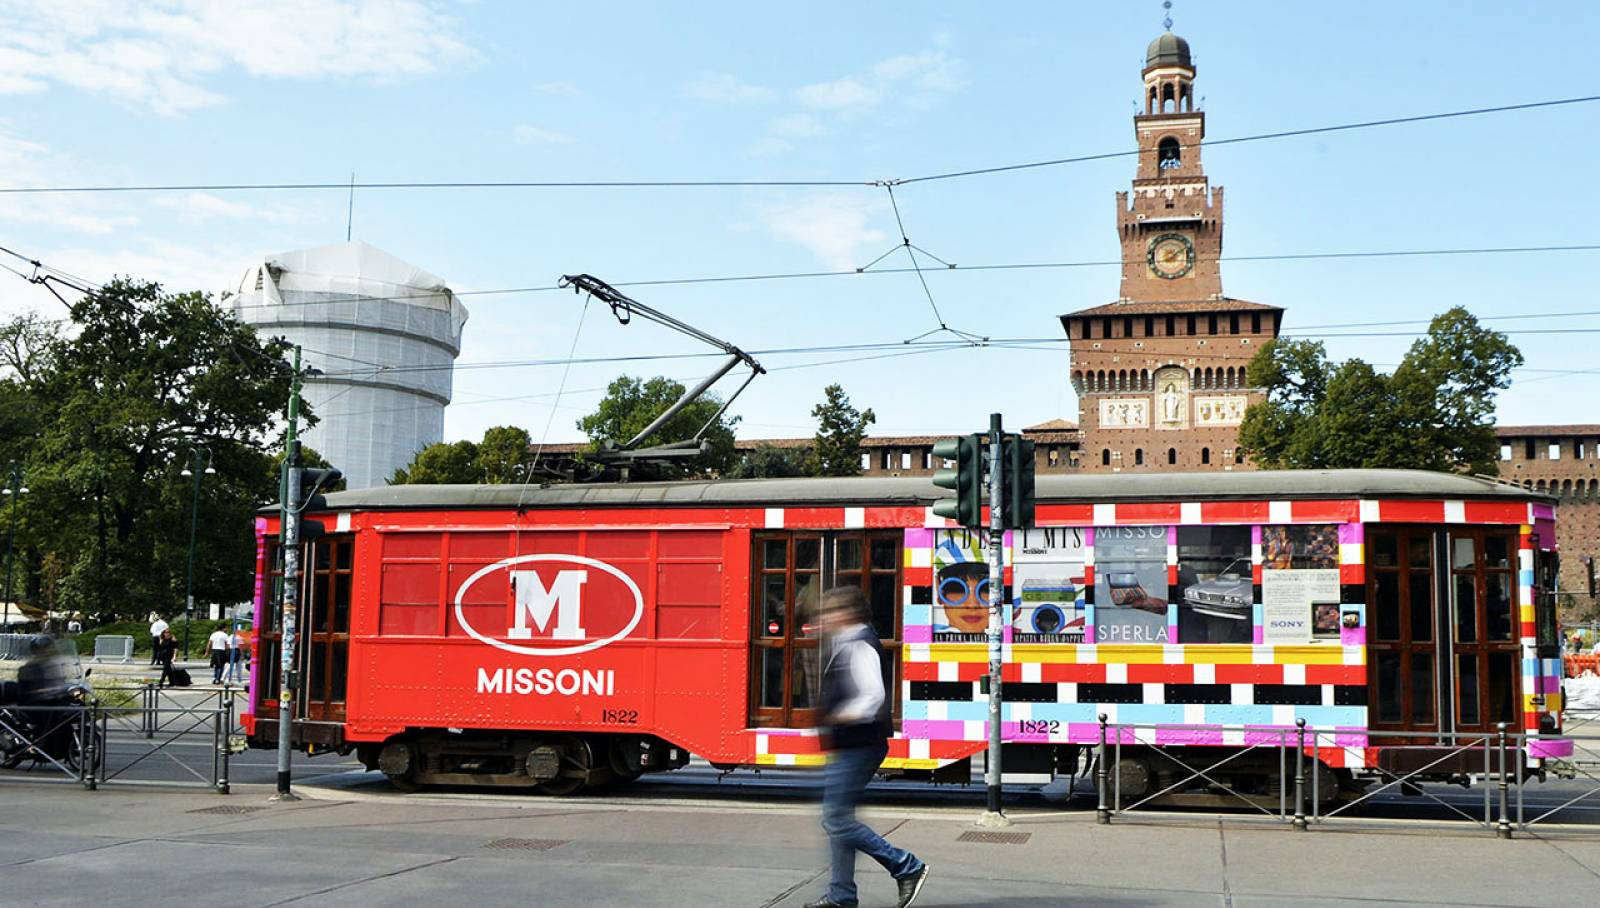 OOH advertising in Milan tram IGPDecaux Creative Solutions for M Missoni